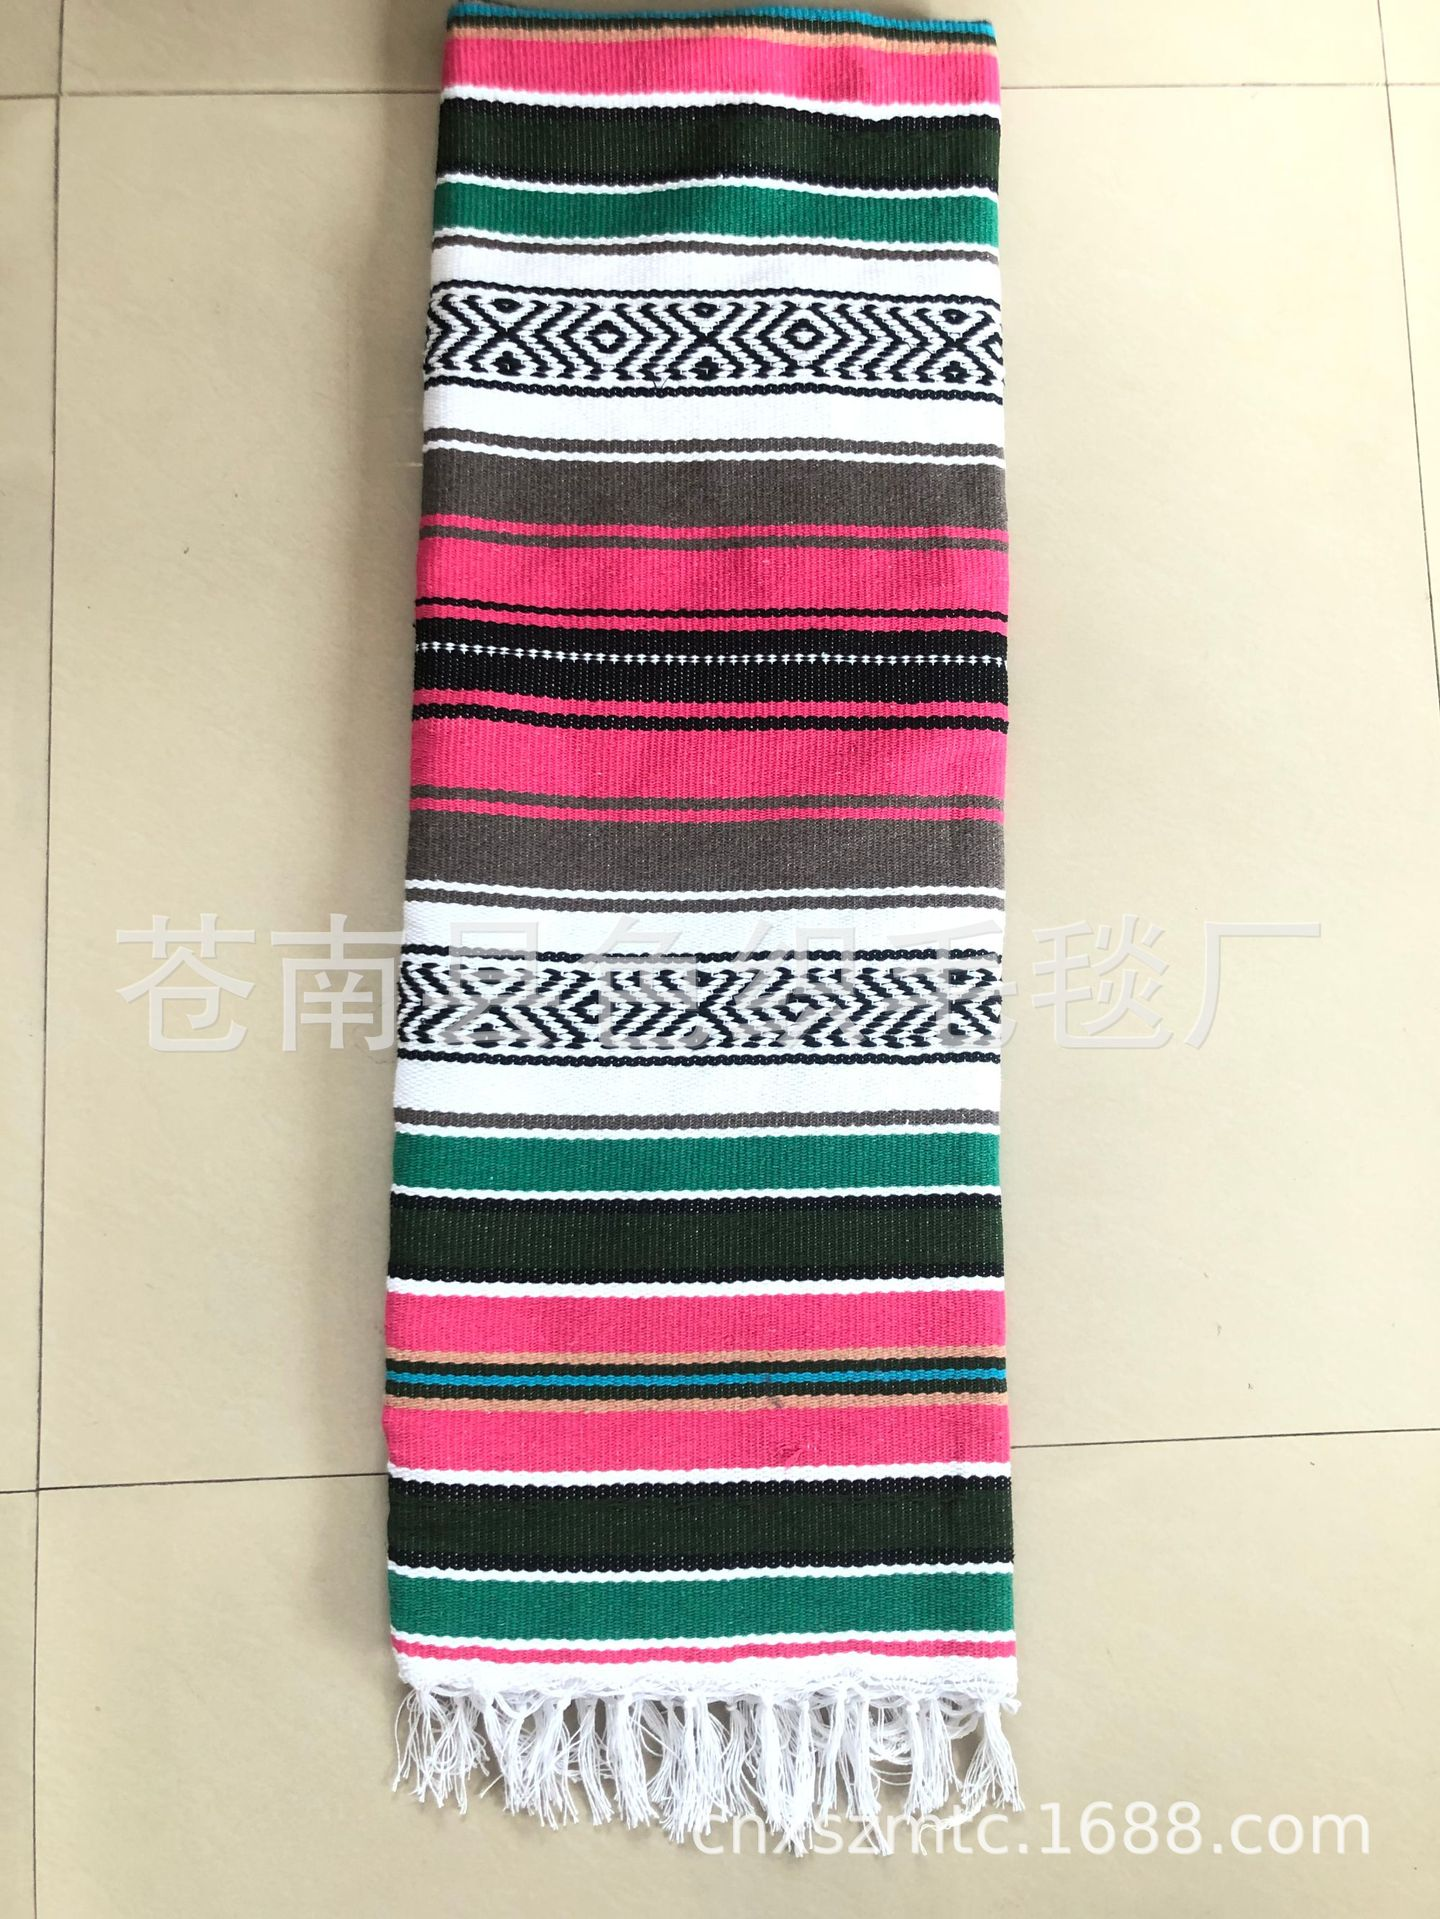 Colorful Striped Colors Shawl for Going to the Beach